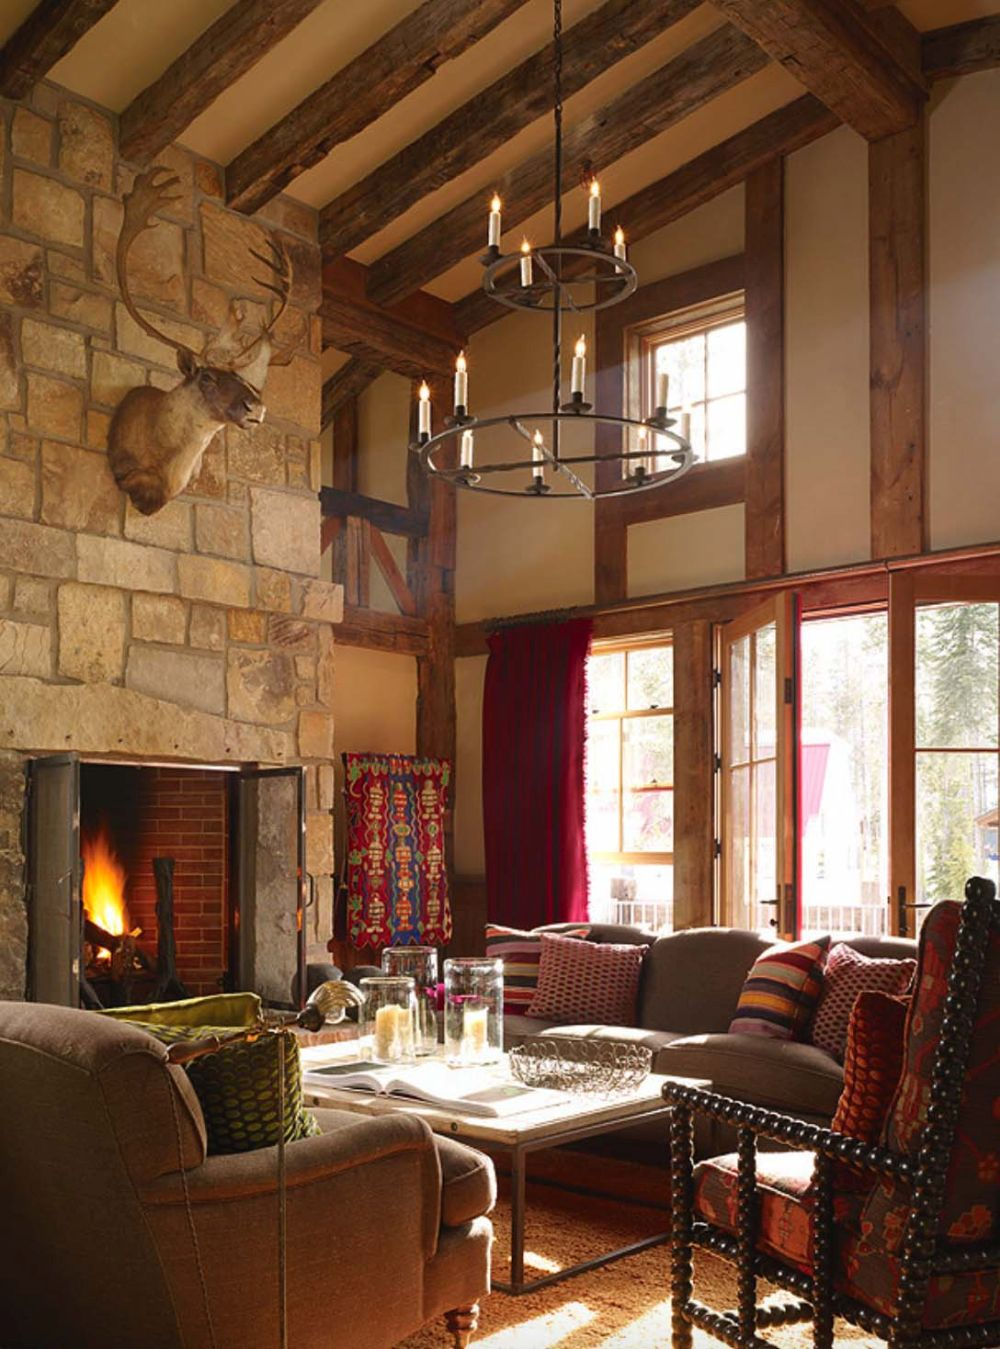 The living room features a massive stone-clad fireplace which makes the whole space look and feel warm and cozy